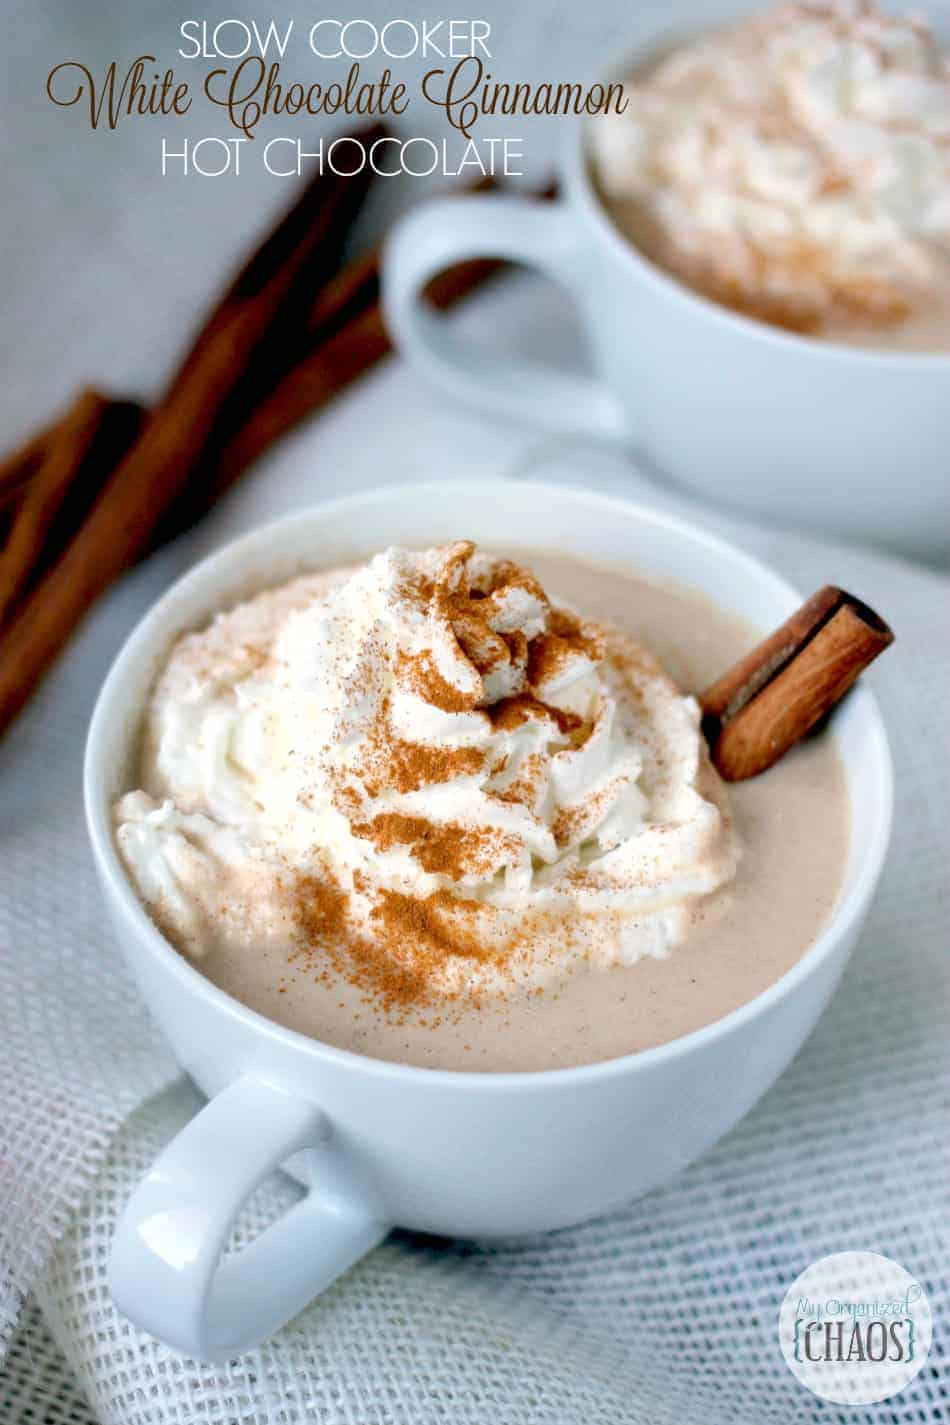 Slow Cooker Hot Chocolate recipe made with white chocolate